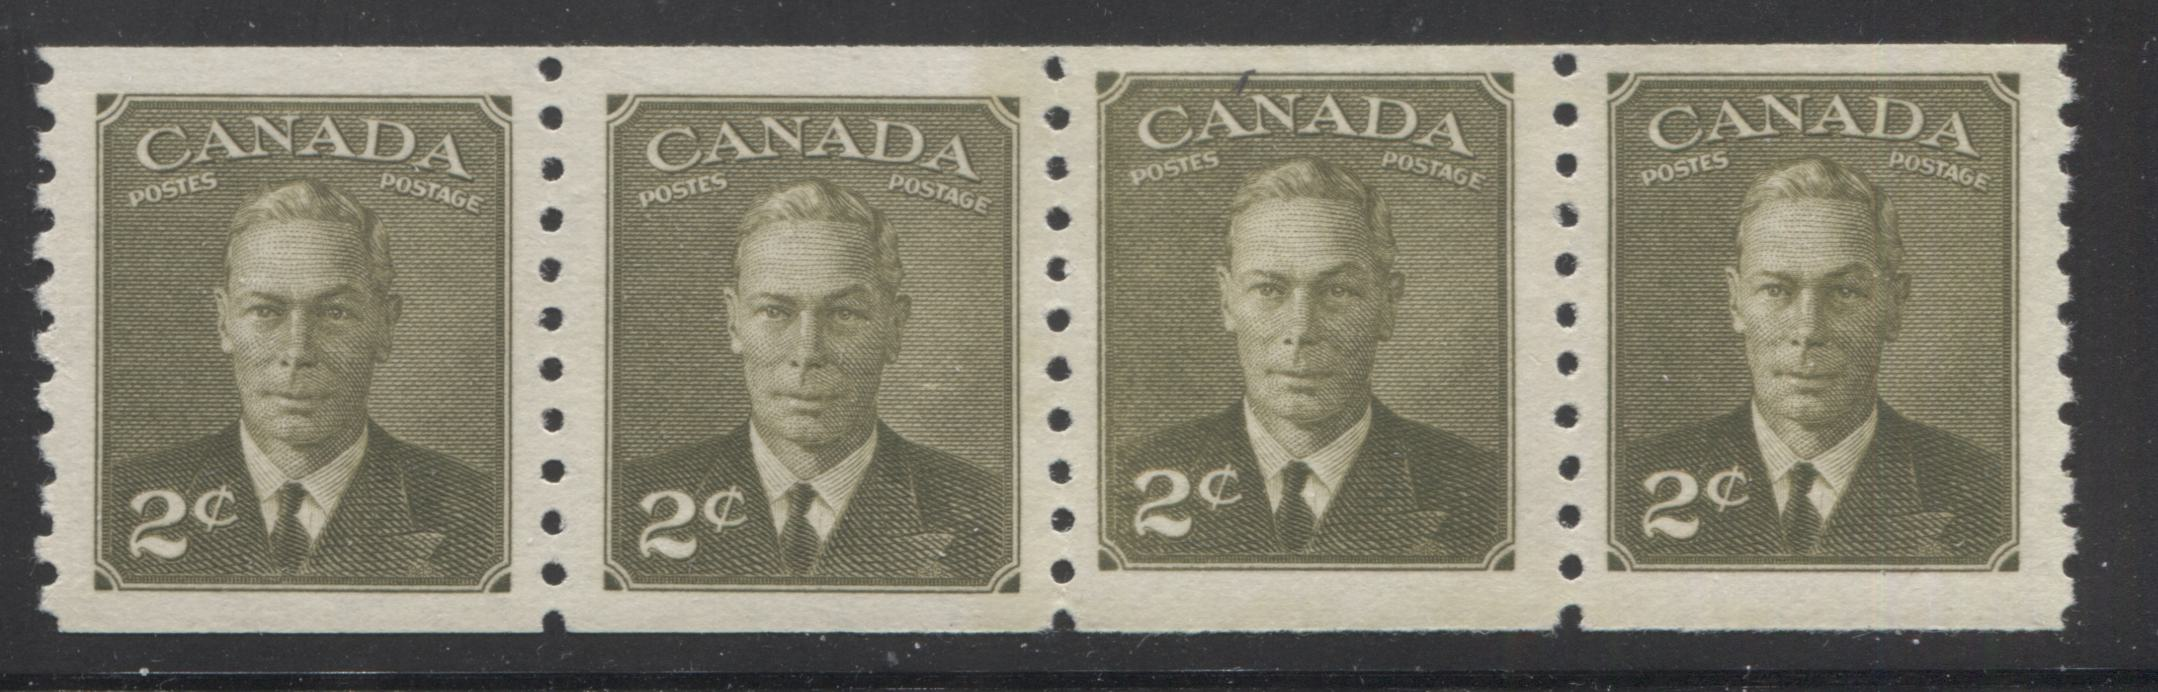 Canada #309i 2c Olive Green King George VI, 1949-1952 Postes Postage Revised Issue, A VFOG/NH Mint Coil Jump Strip